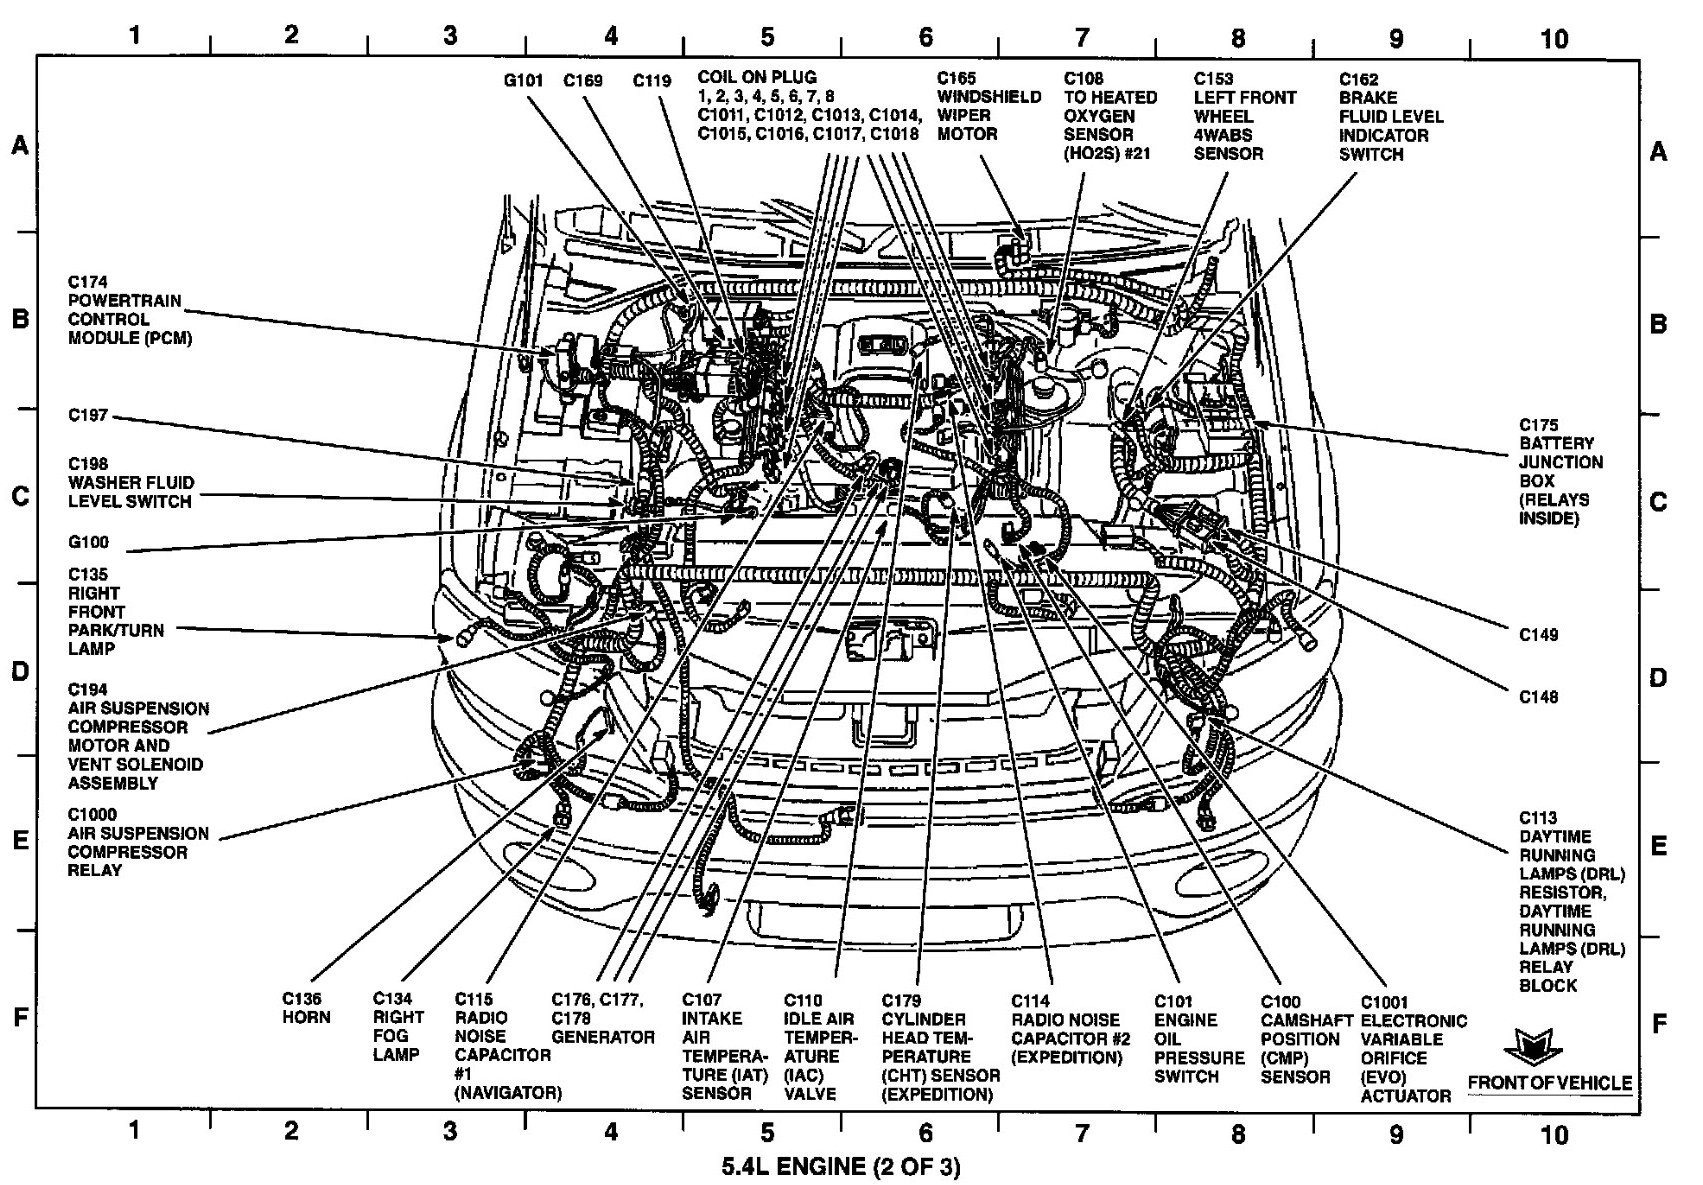 hight resolution of 2001 lincoln navigator engine diagram wiring diagram 2000 lincoln navigator engine diagram